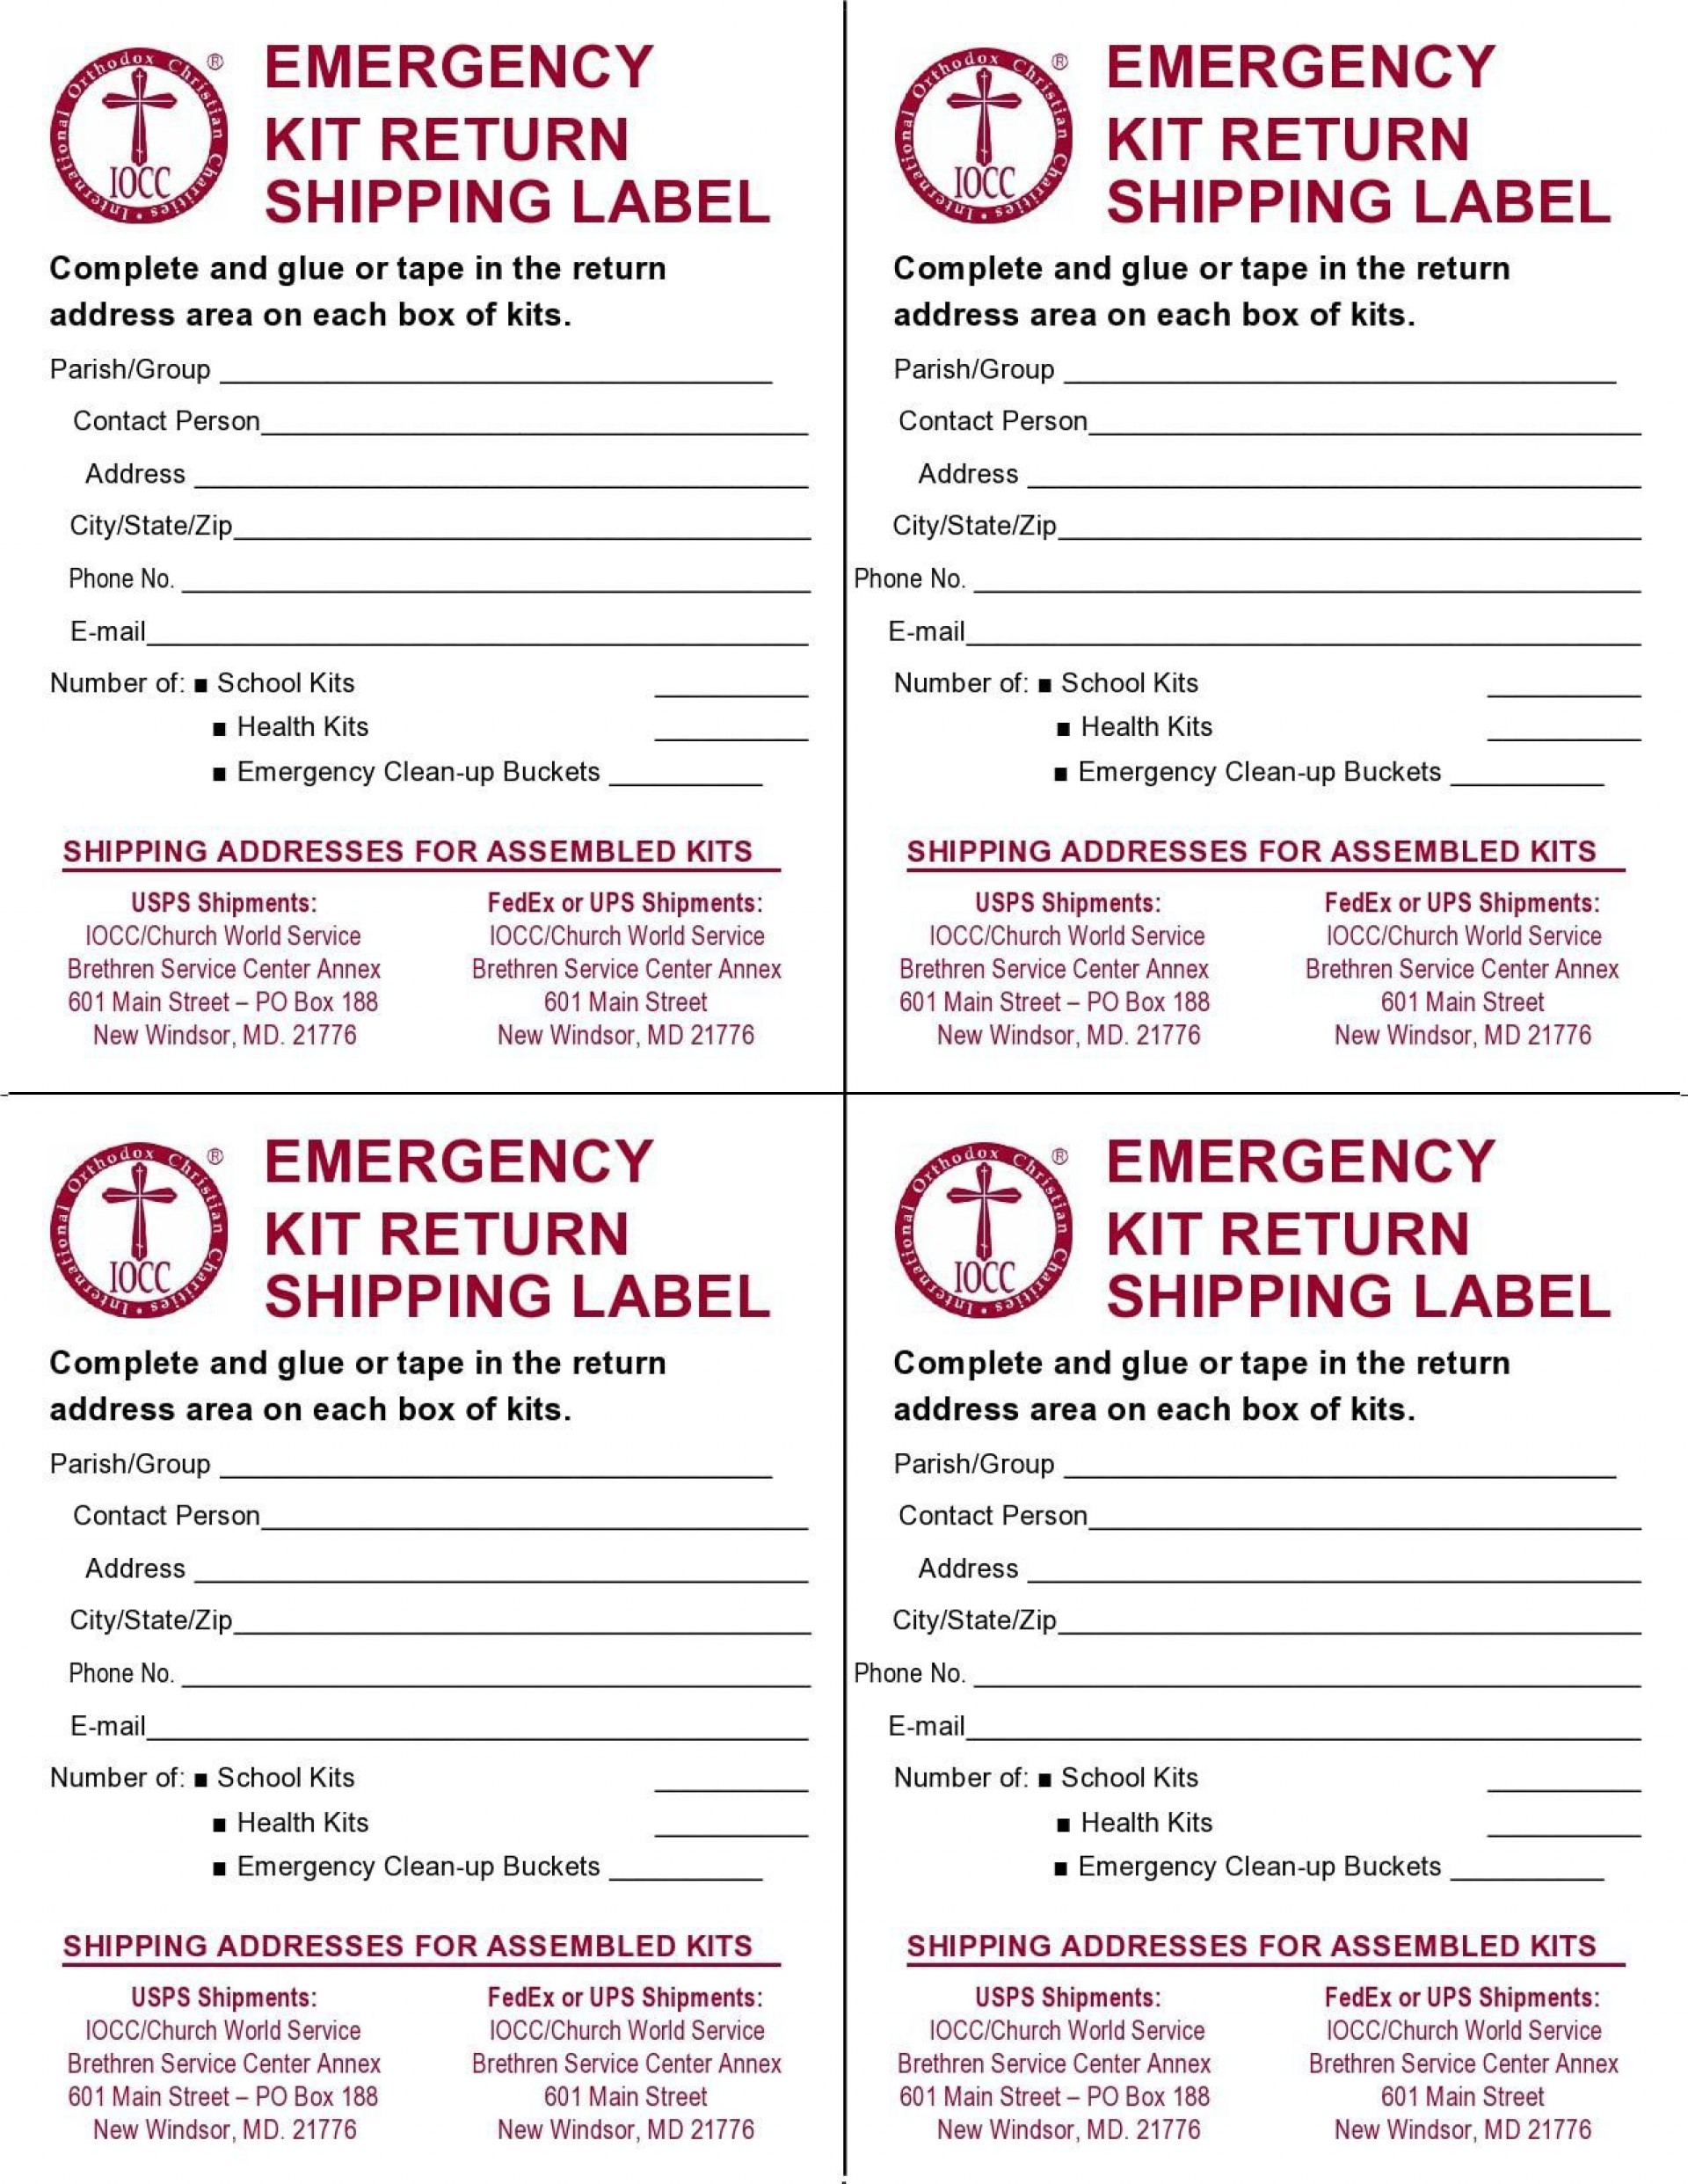 009 Dreaded Free Shipping Label Template High Def  Templates Usp Avery Word1920